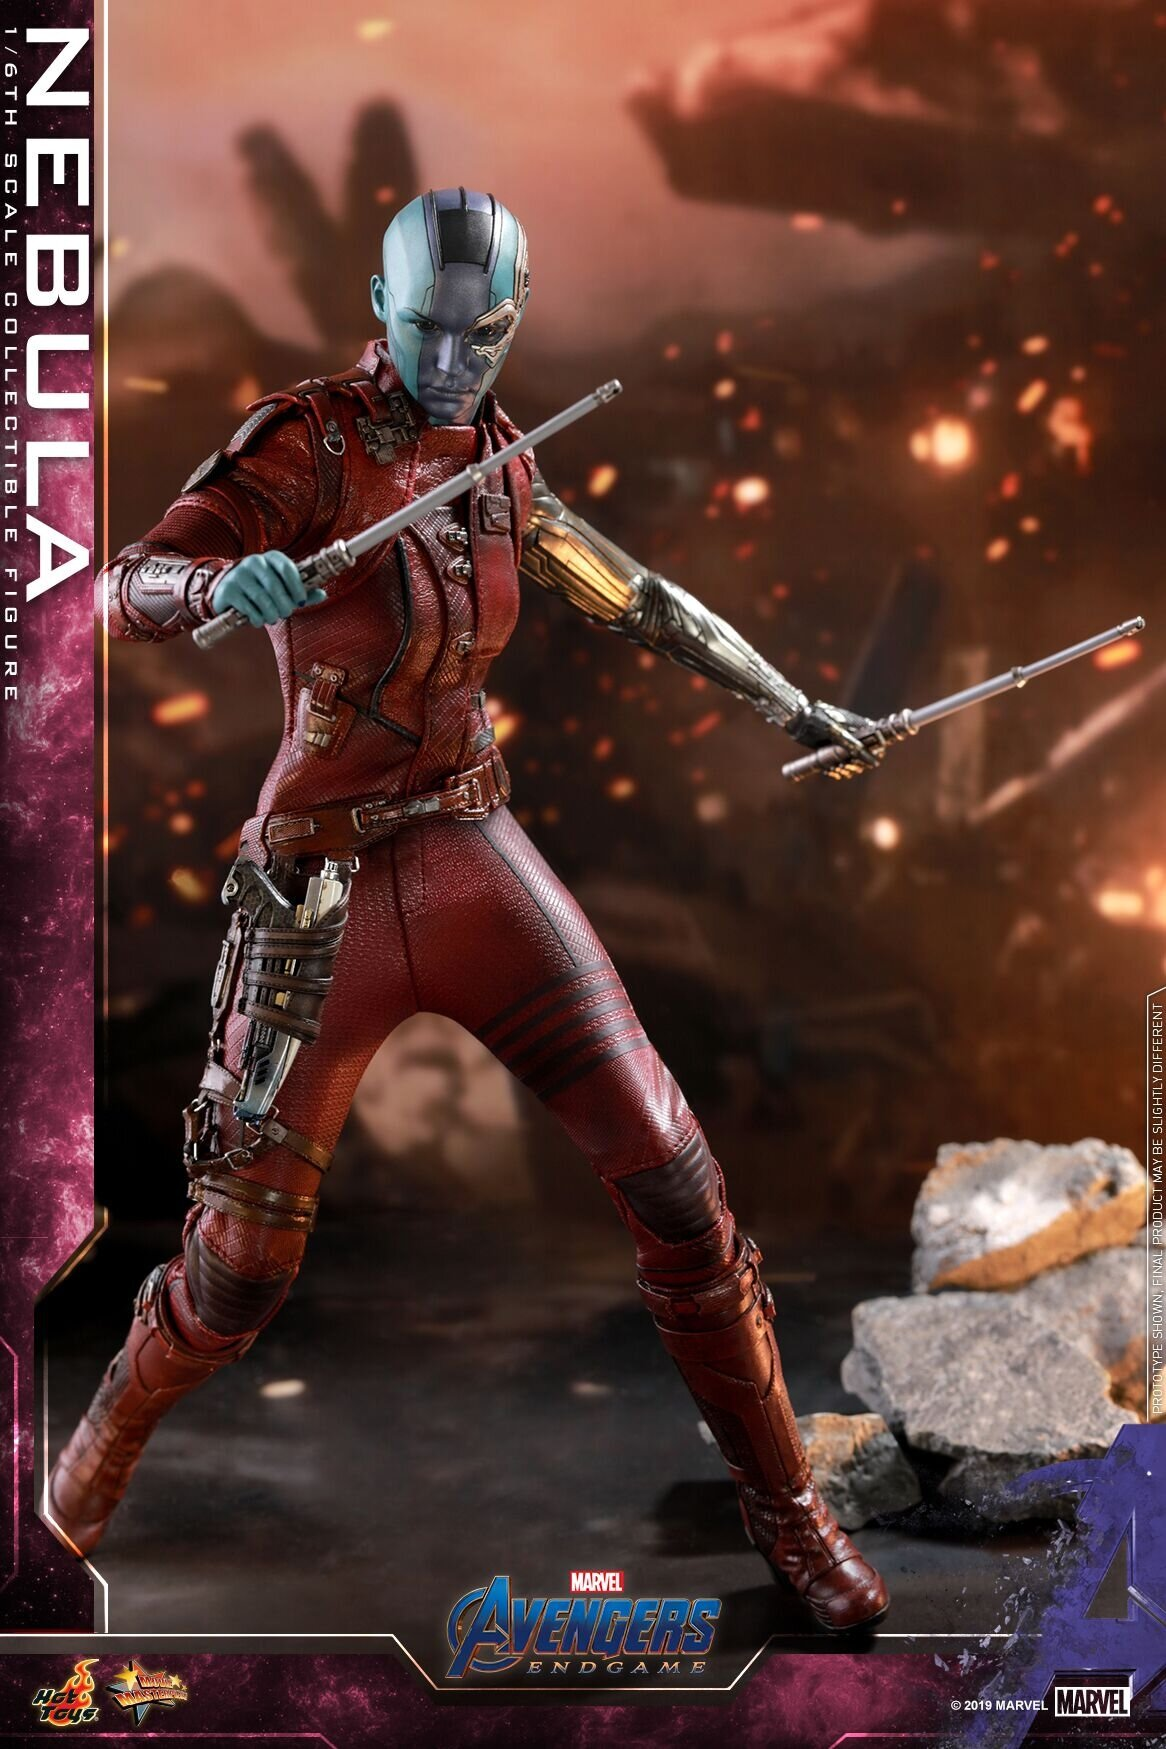 [Hot Toys] 어벤져스 : 엔드게임 네뷸라 MMS534 - 1/6th scale Nebula Collectible Figure